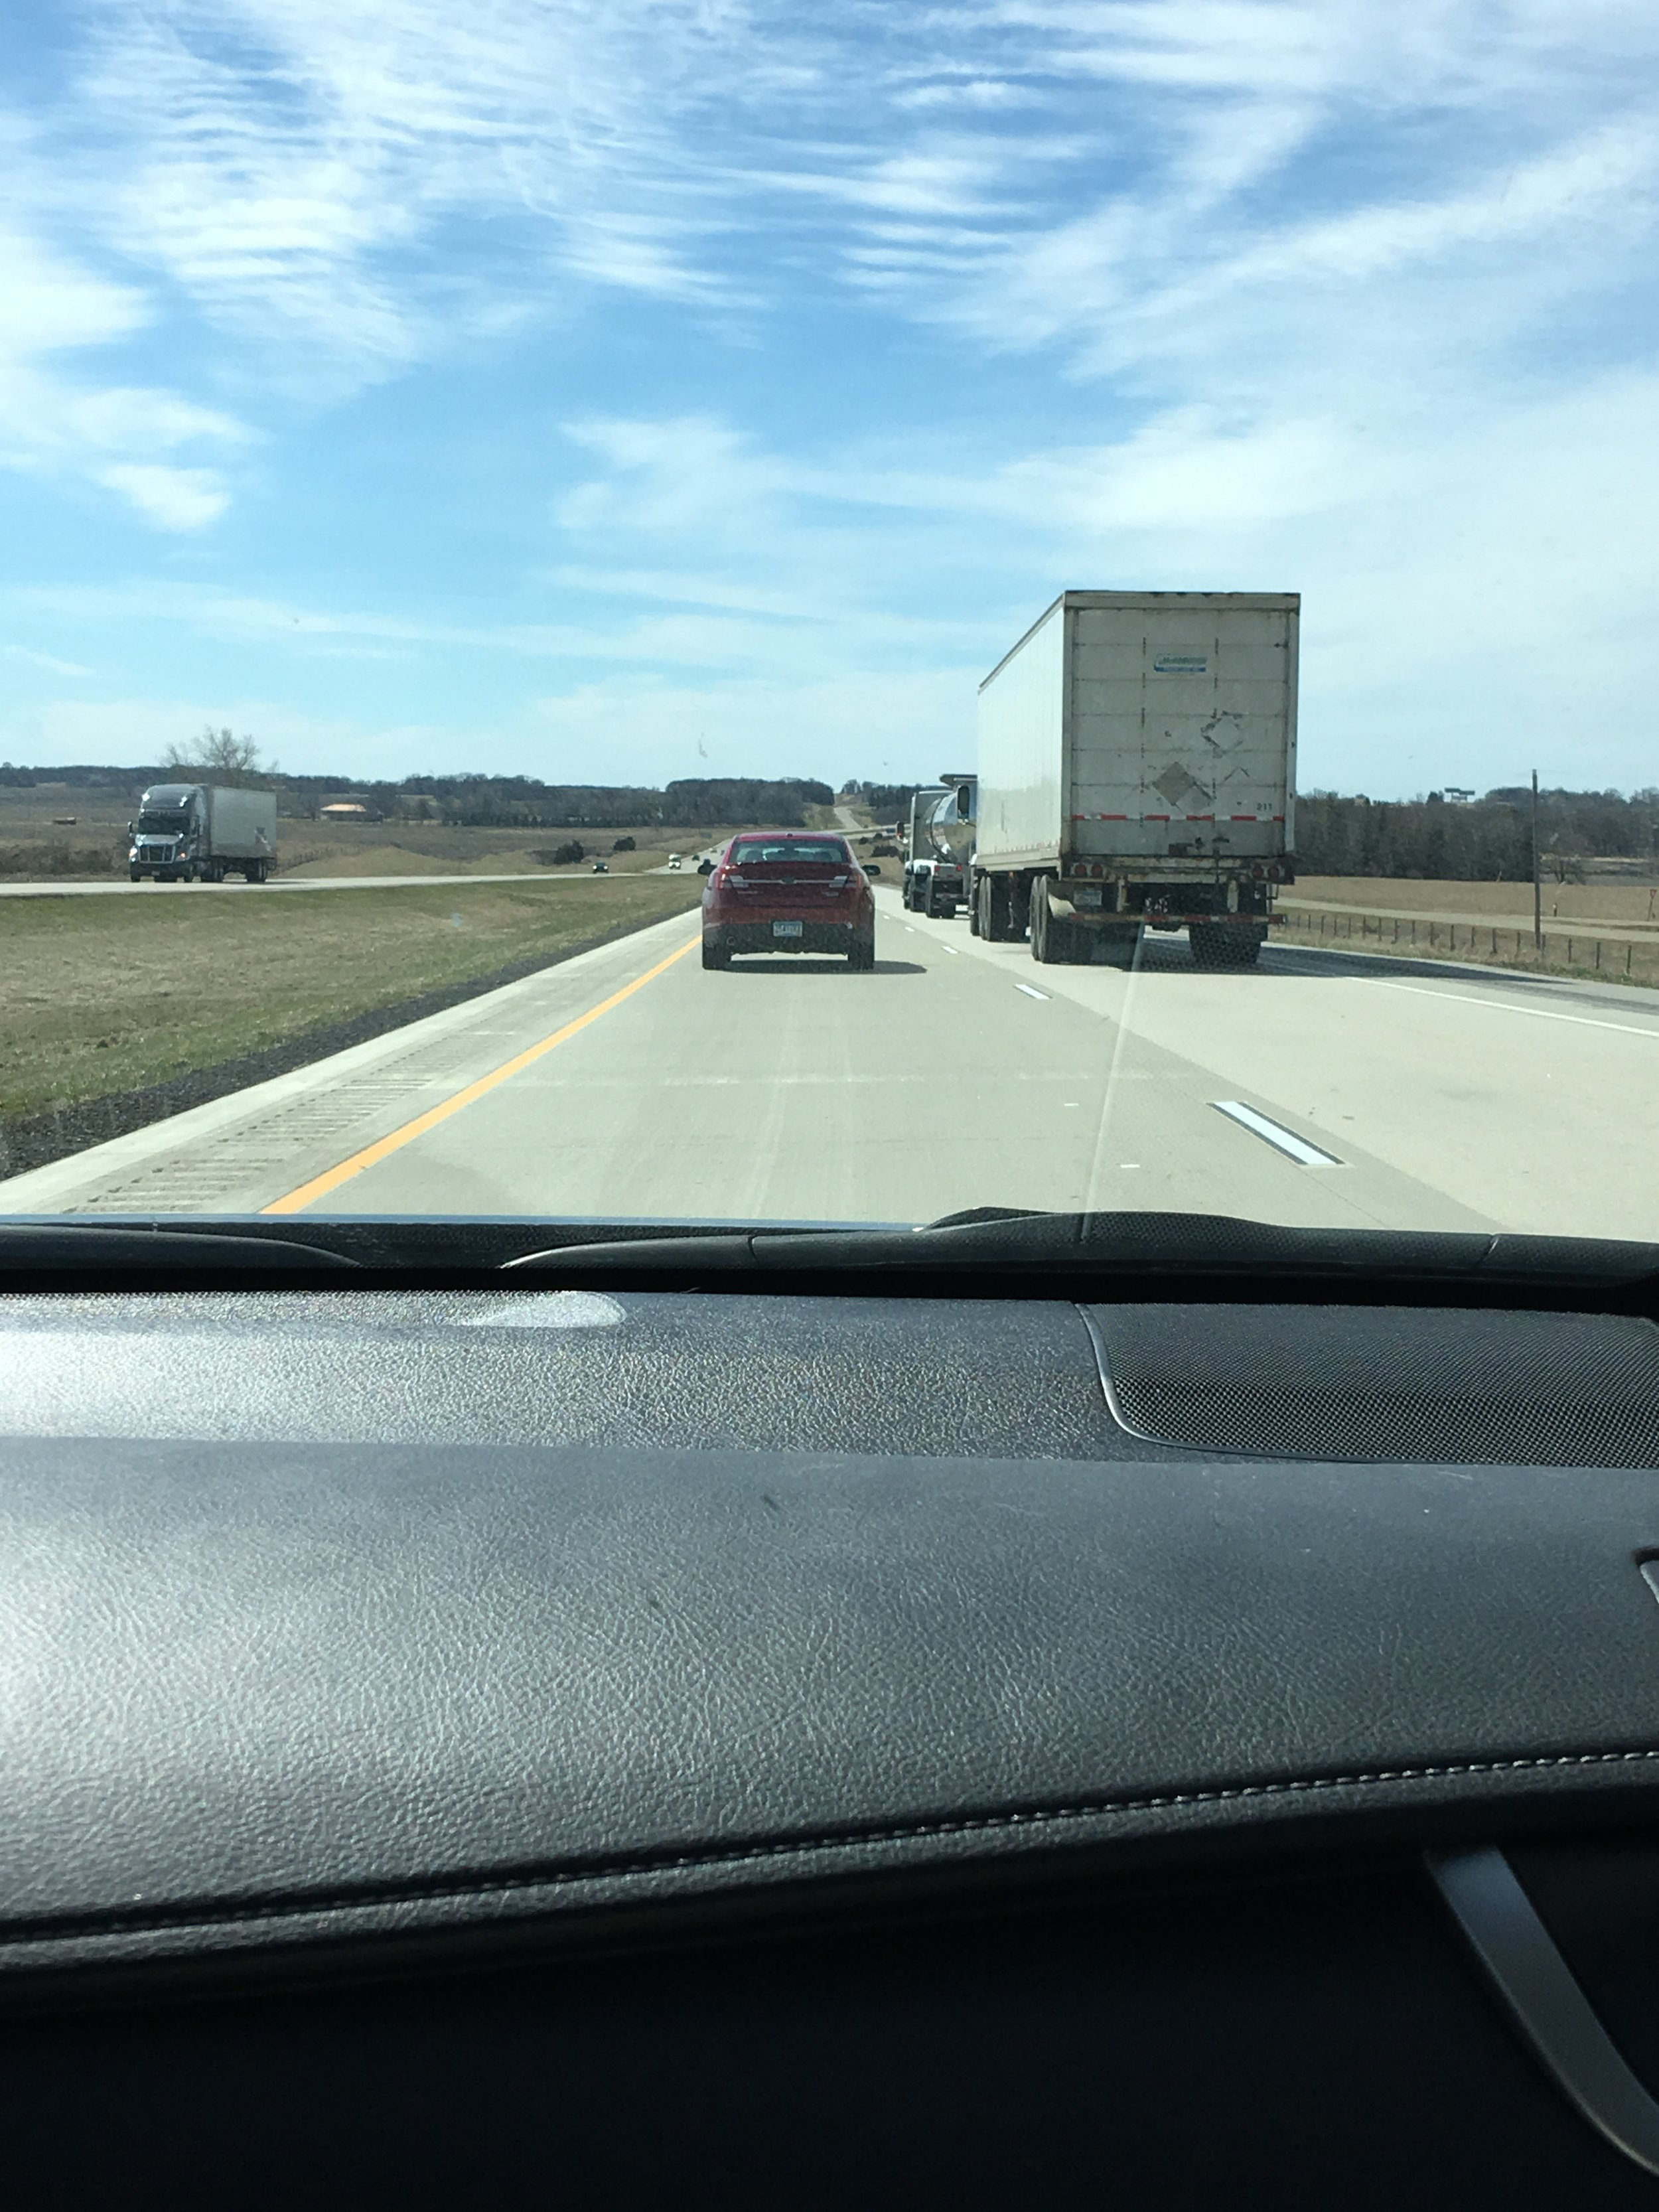 Section of I-35 between Minneapolis and Des Moines filled with semi traffic